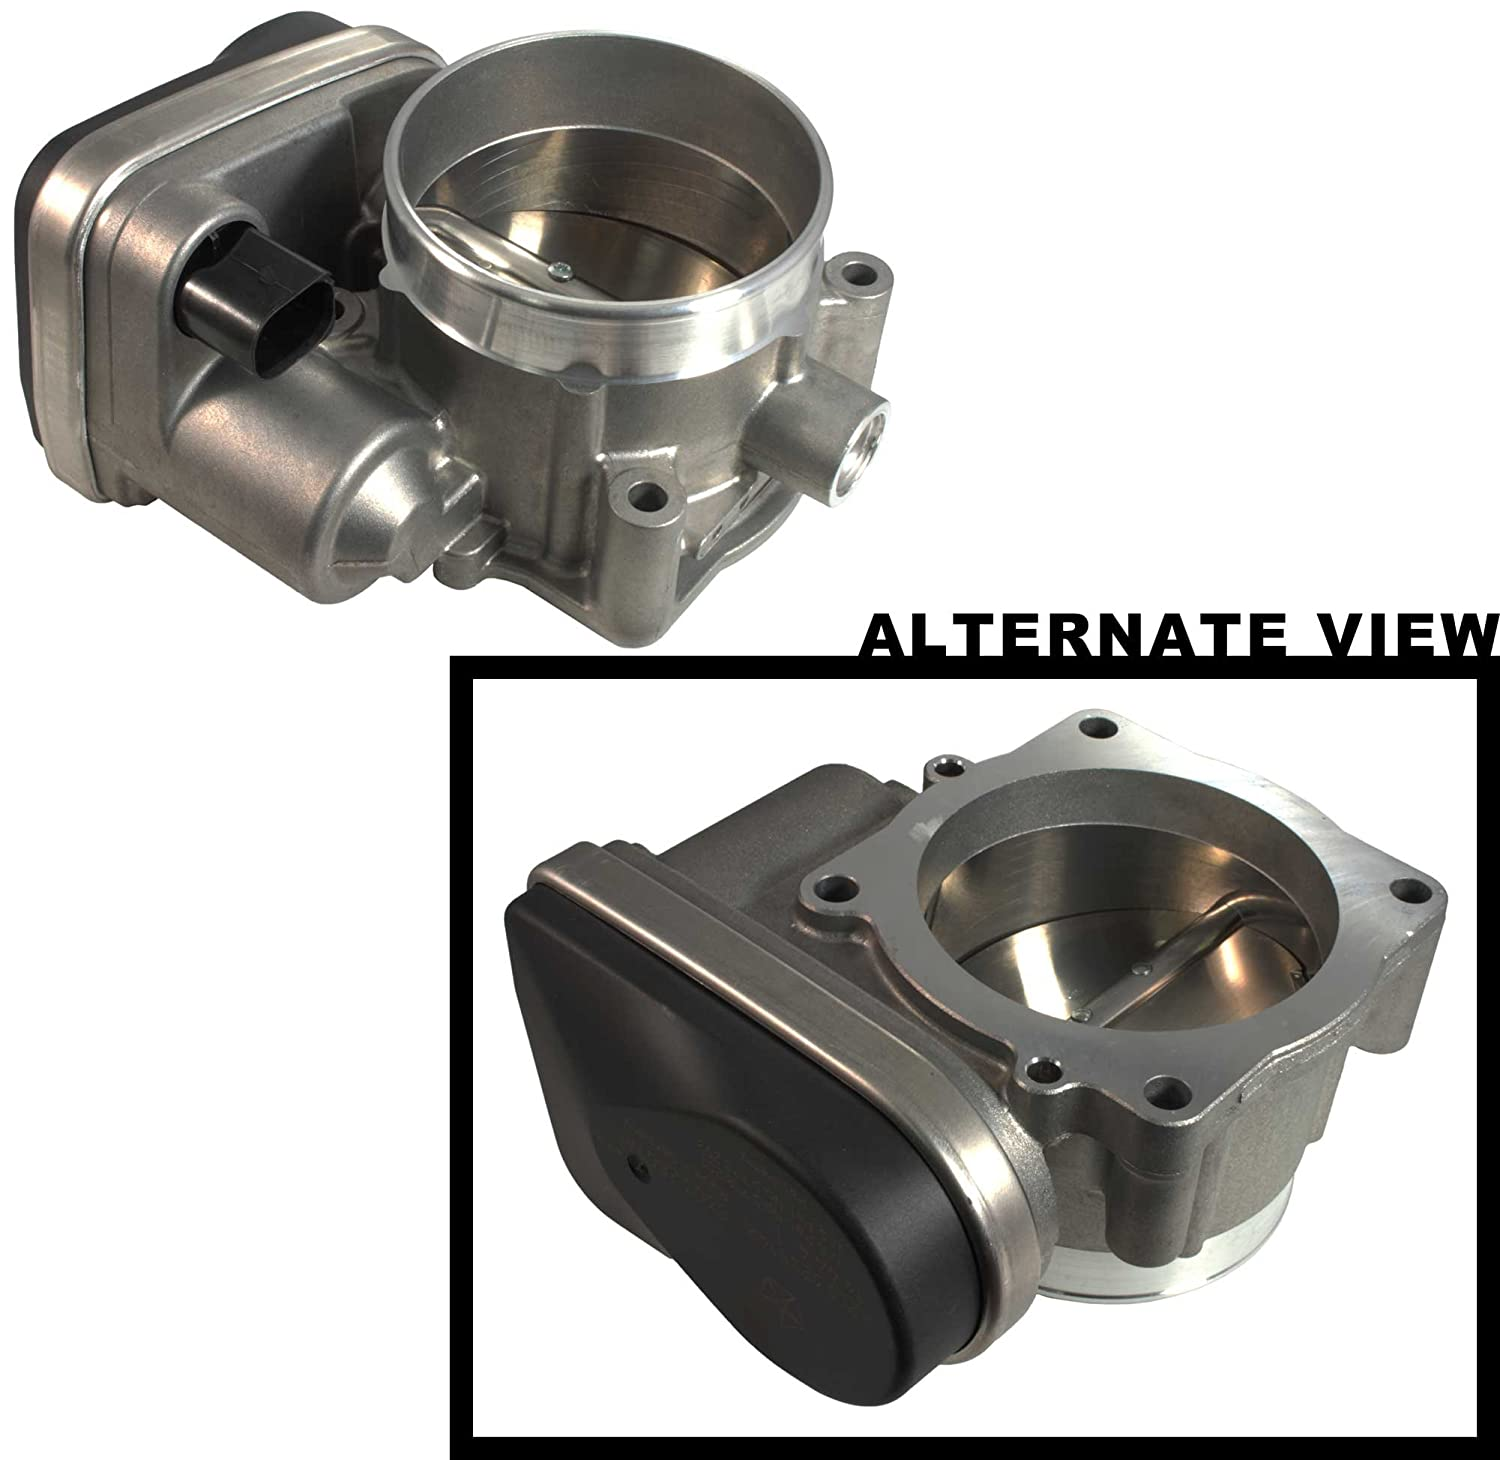 71e1jBk8%2BYL._SL1500_ amazon com apdty 112669 electronic throttle body w actuator valve  at soozxer.org